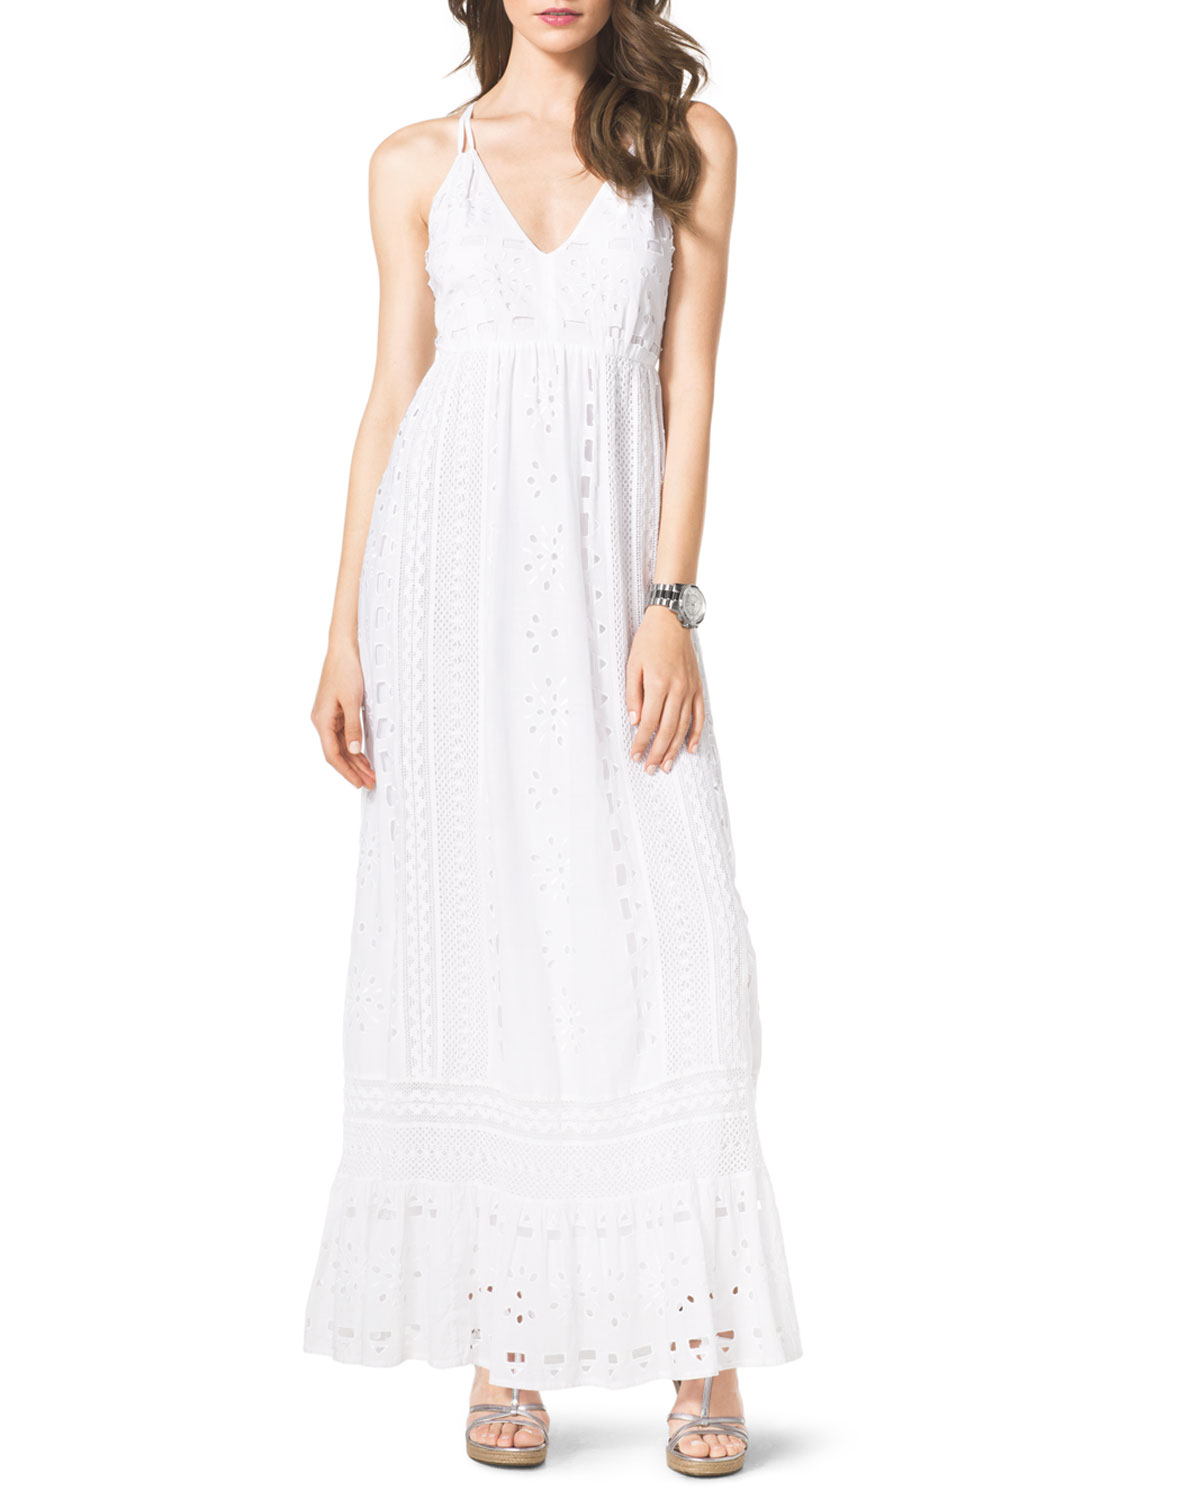 f10aeb1972c7 Lyst - MICHAEL Michael Kors Cotton Eyelet Maxi Dress in White